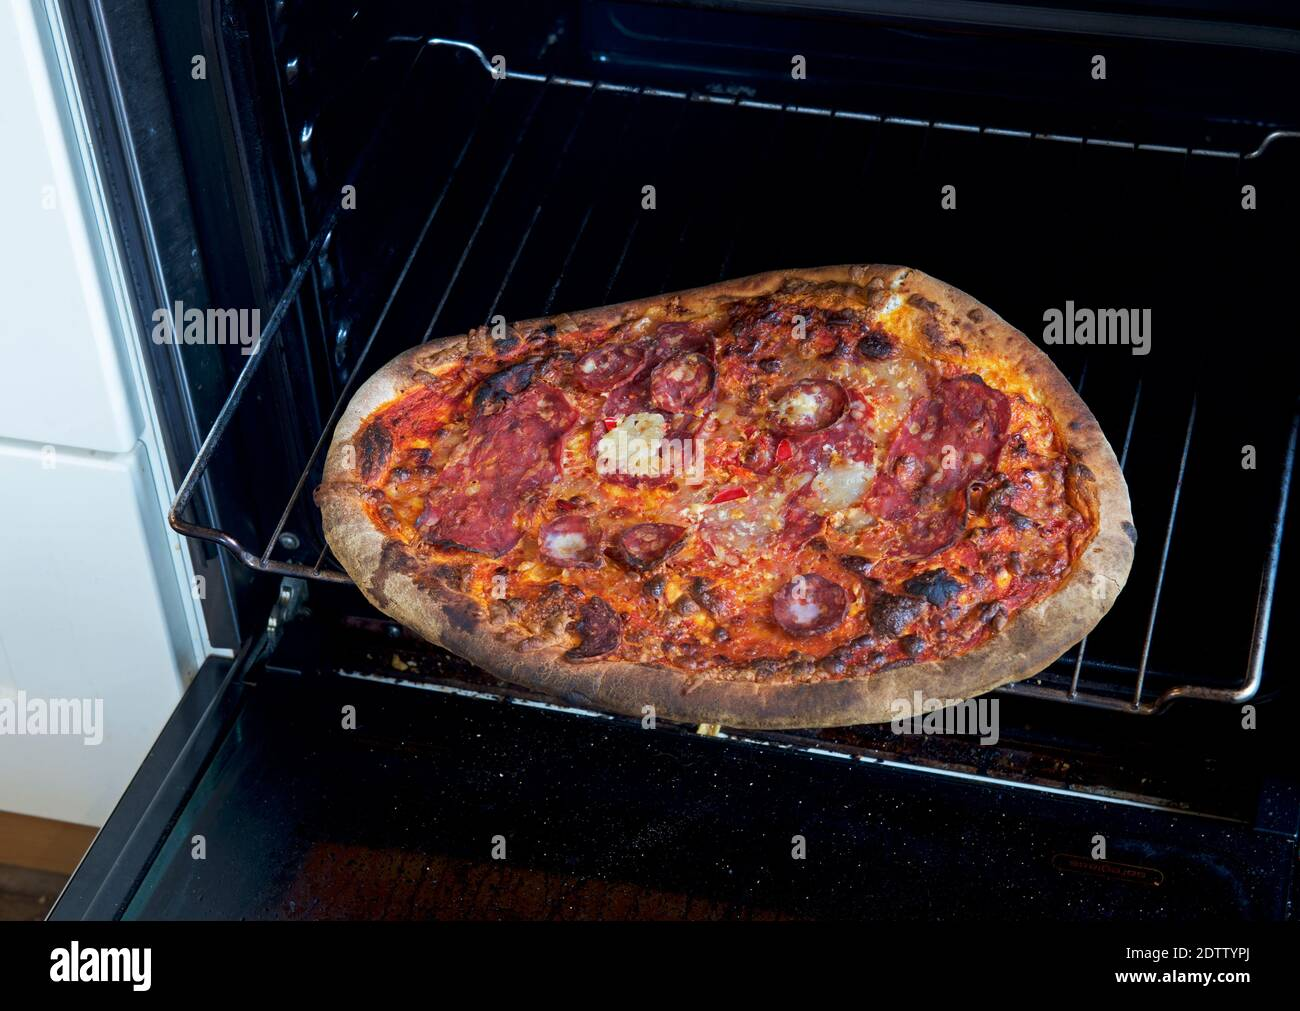 Burnt pepperoni pizza on rack in oven Stock Photo